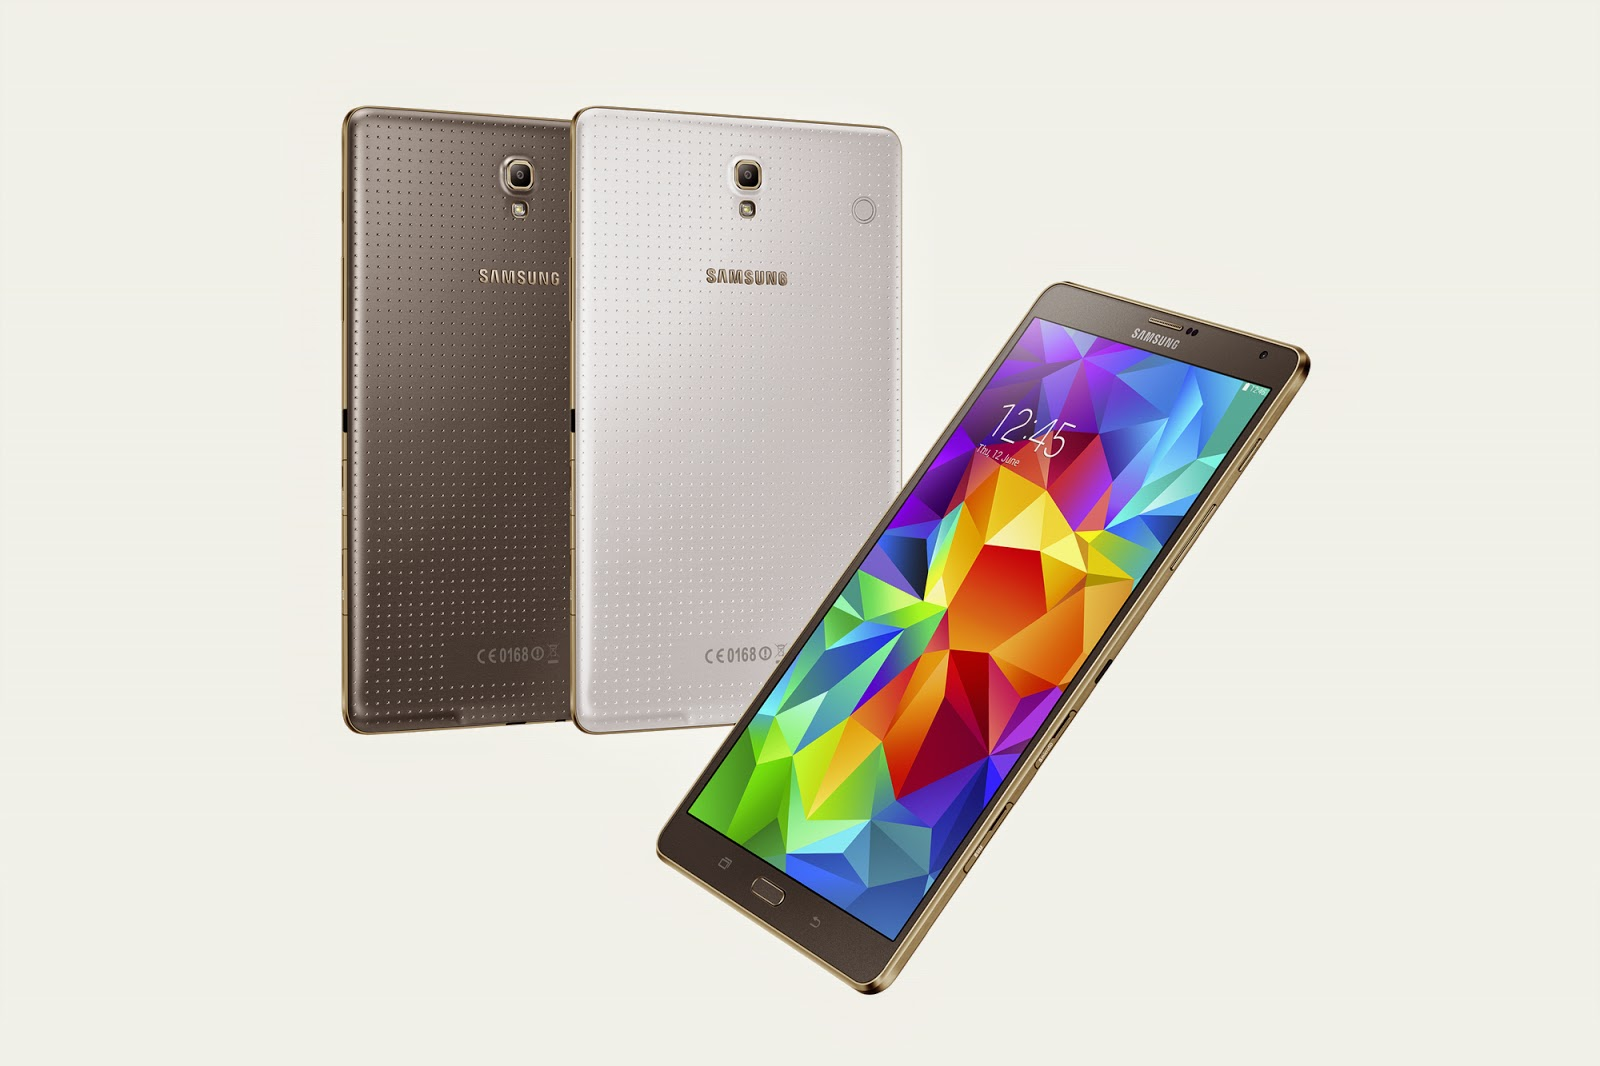 Samsung Galaxy Tab S 8.4 now available at Sun Cellular